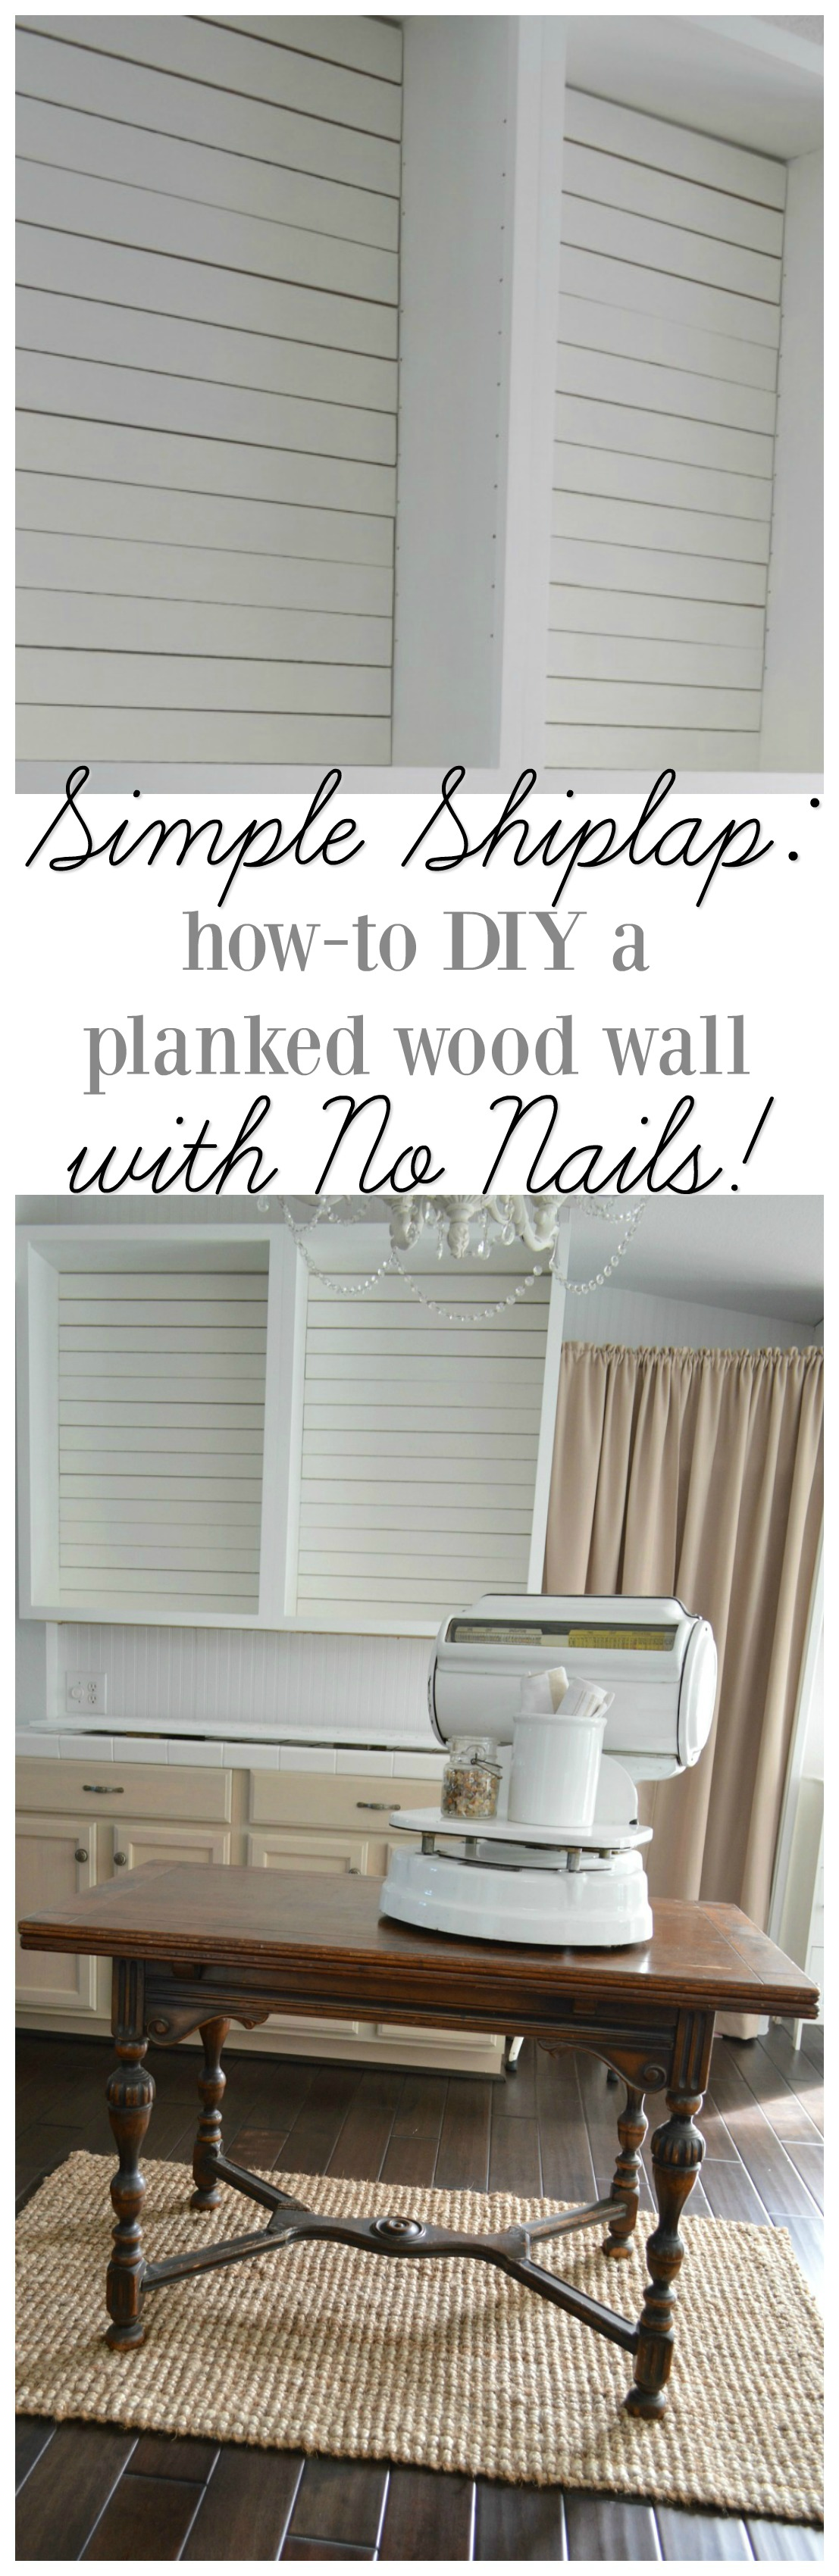 Open kitchen cabinet makeover update. White cottage farmhouse | Simple Shiplap: How To DIY a Planked Wall with No Nails by Shannon Fox at foxhollowcottage.com